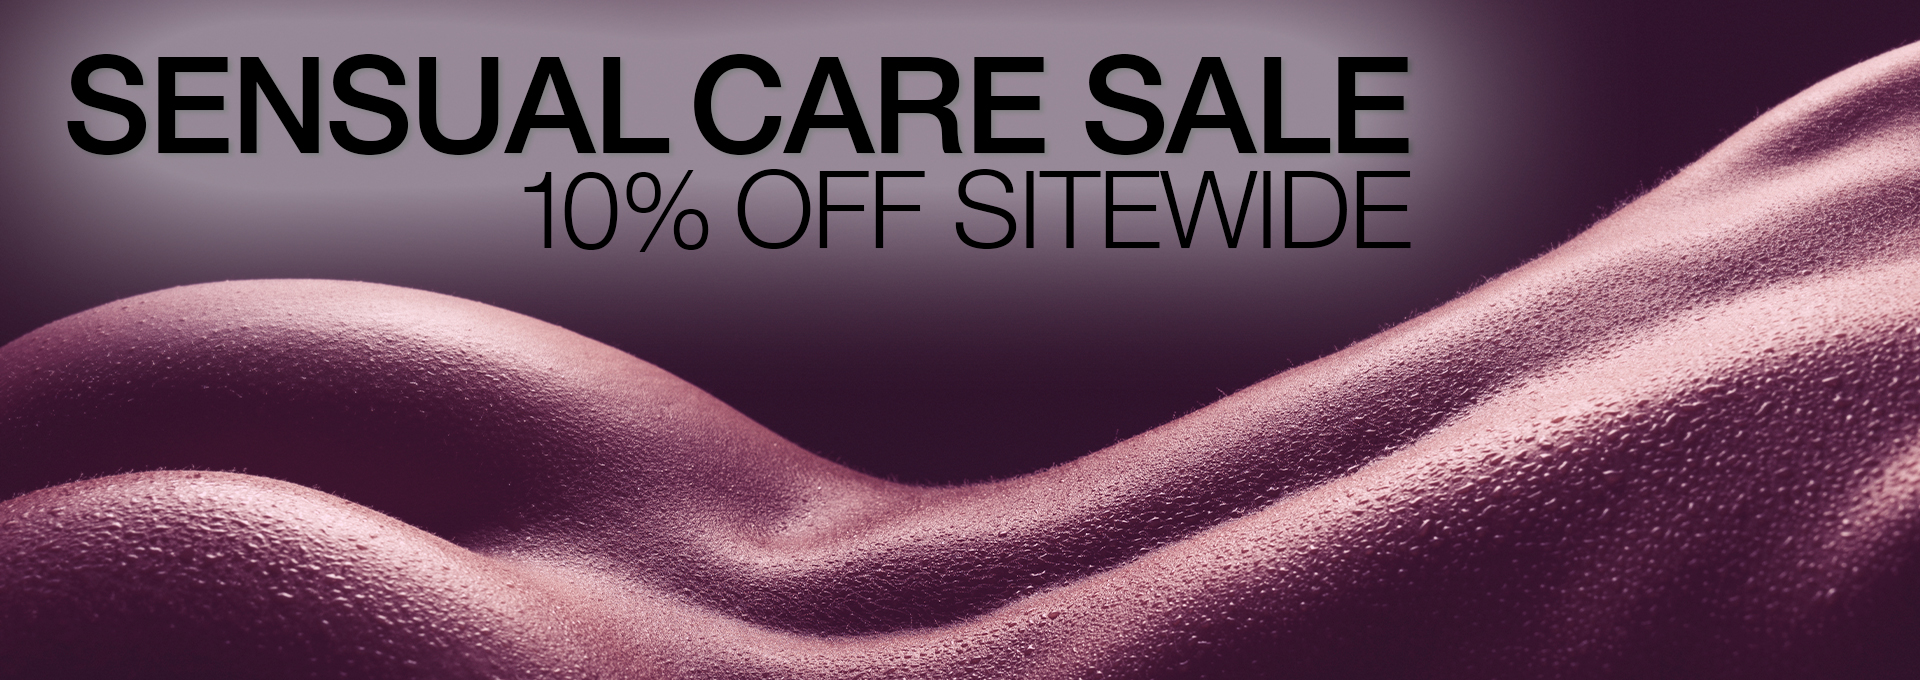 Sensual Care Sale 10% OFF Sitewide